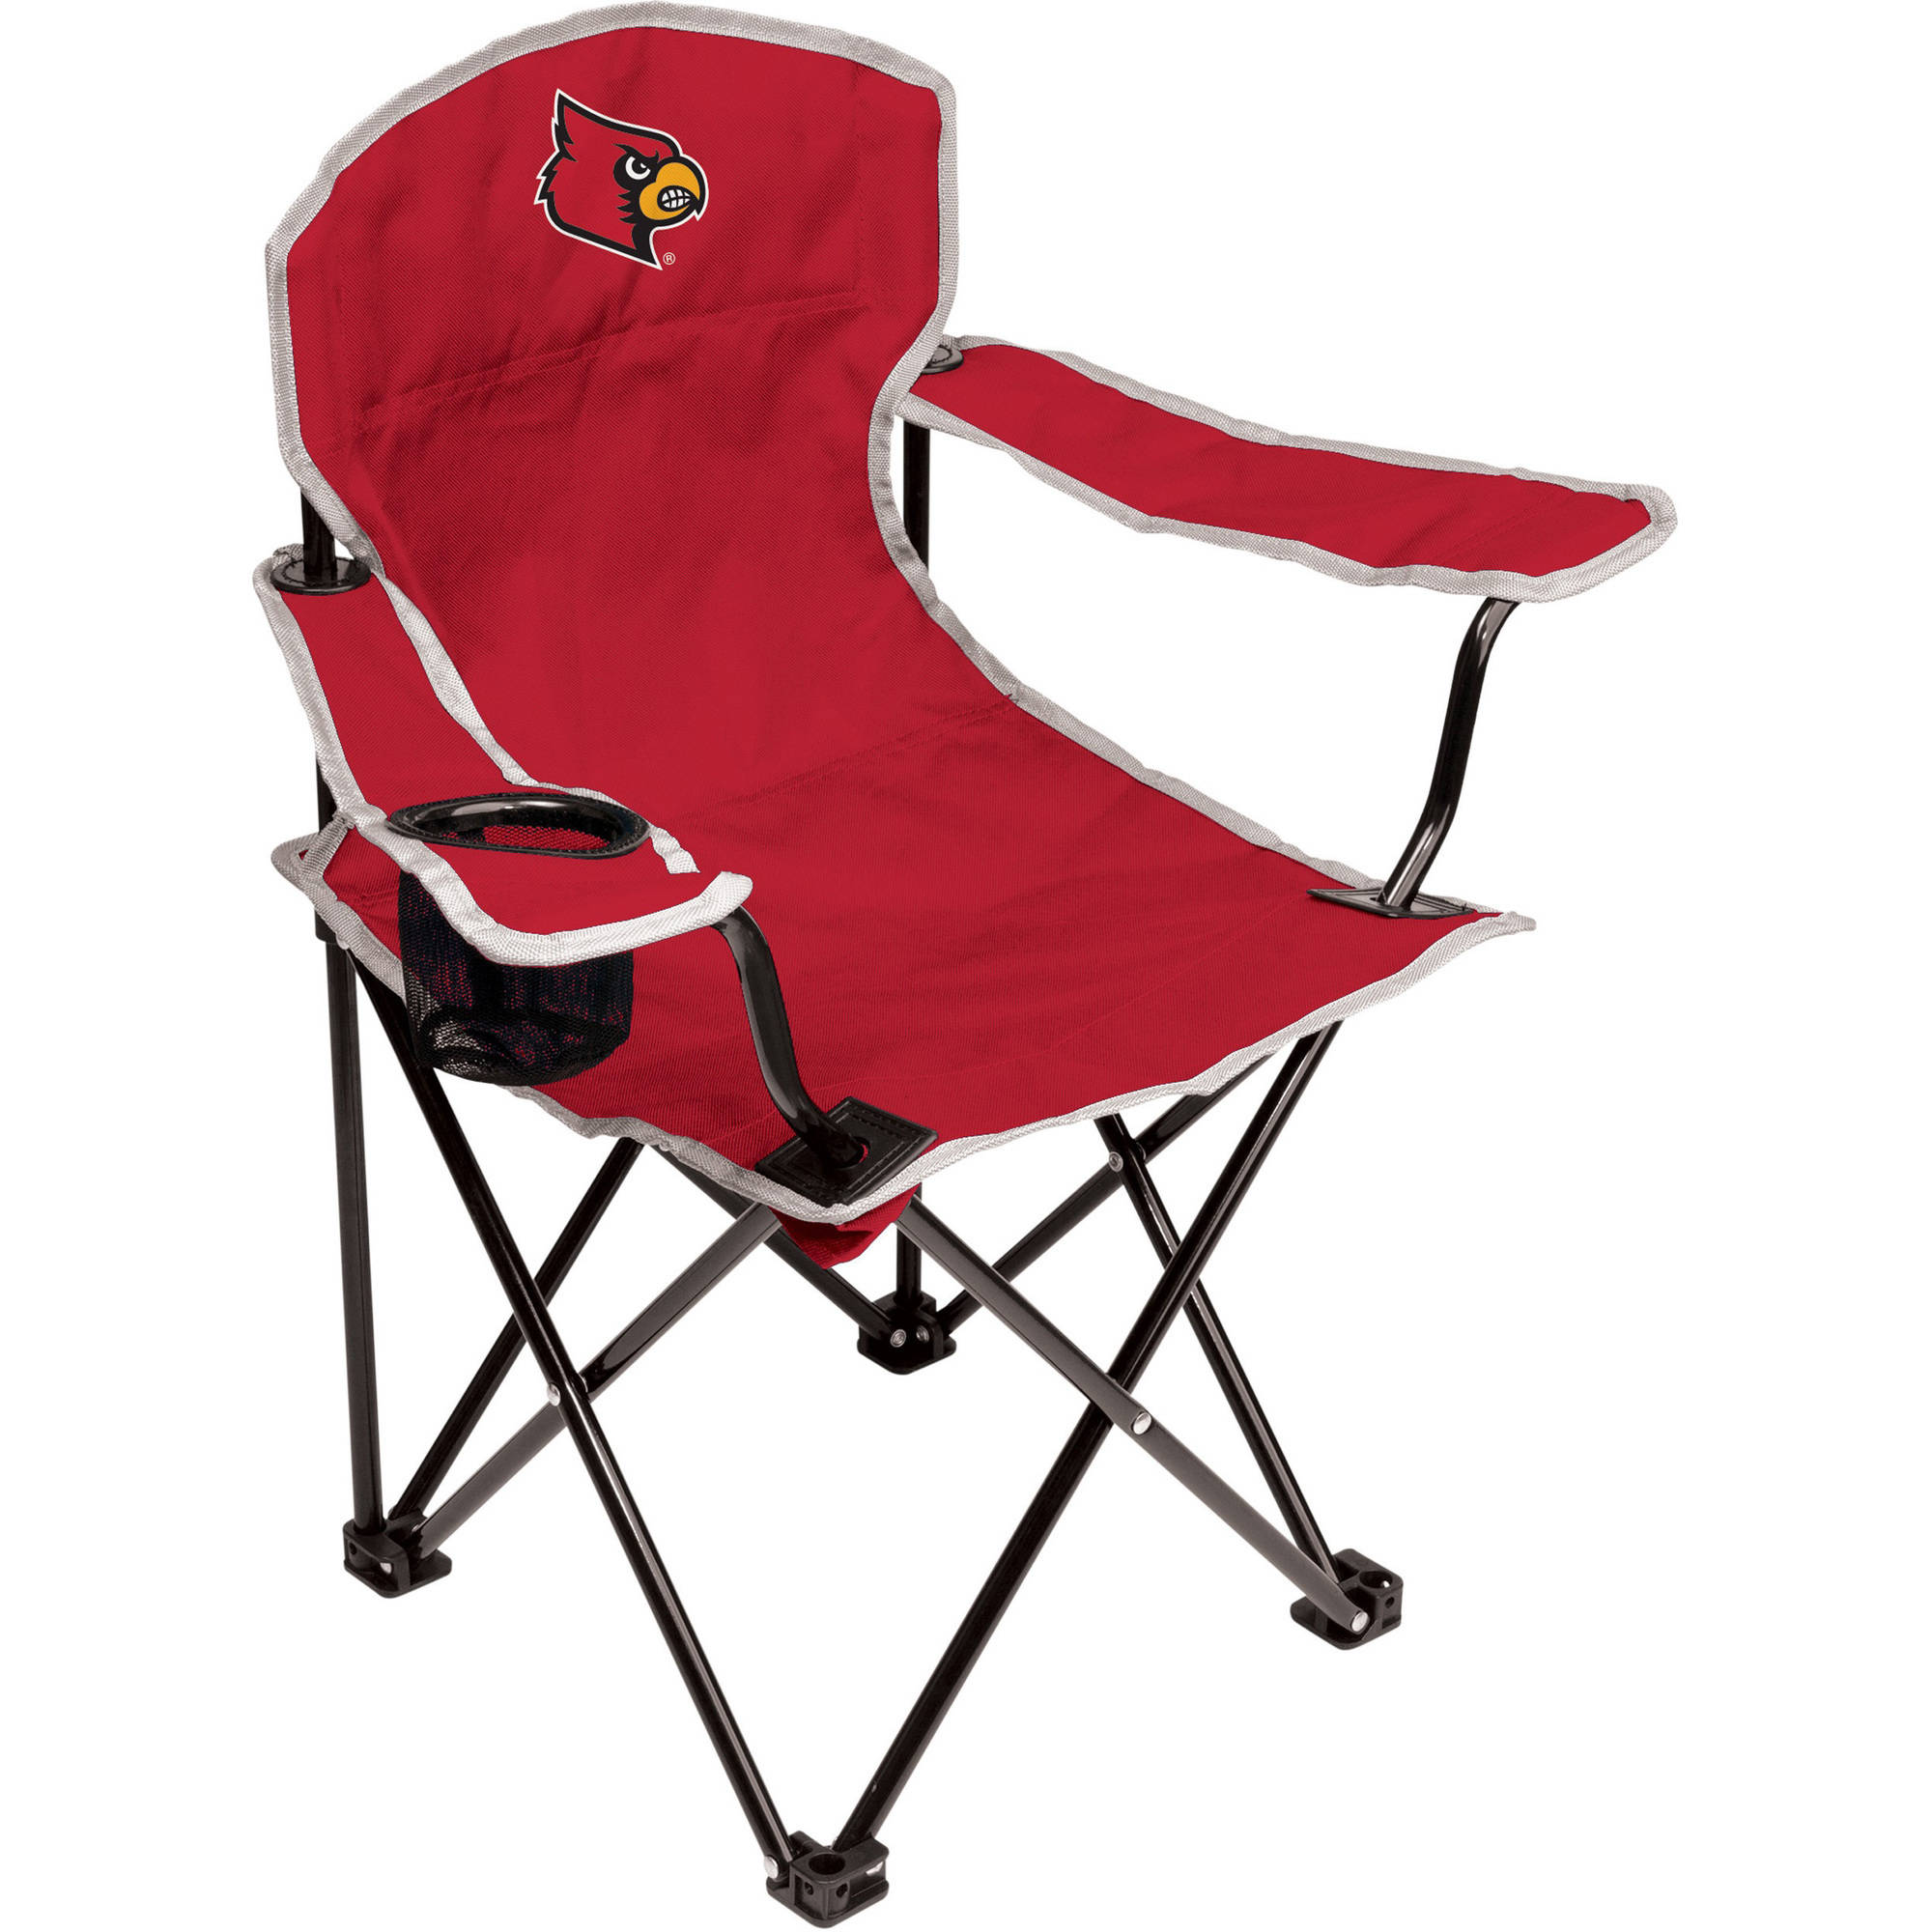 NCAA Louisville Cardinals Youth Size Tailgate Chair from Coleman by Rawlings